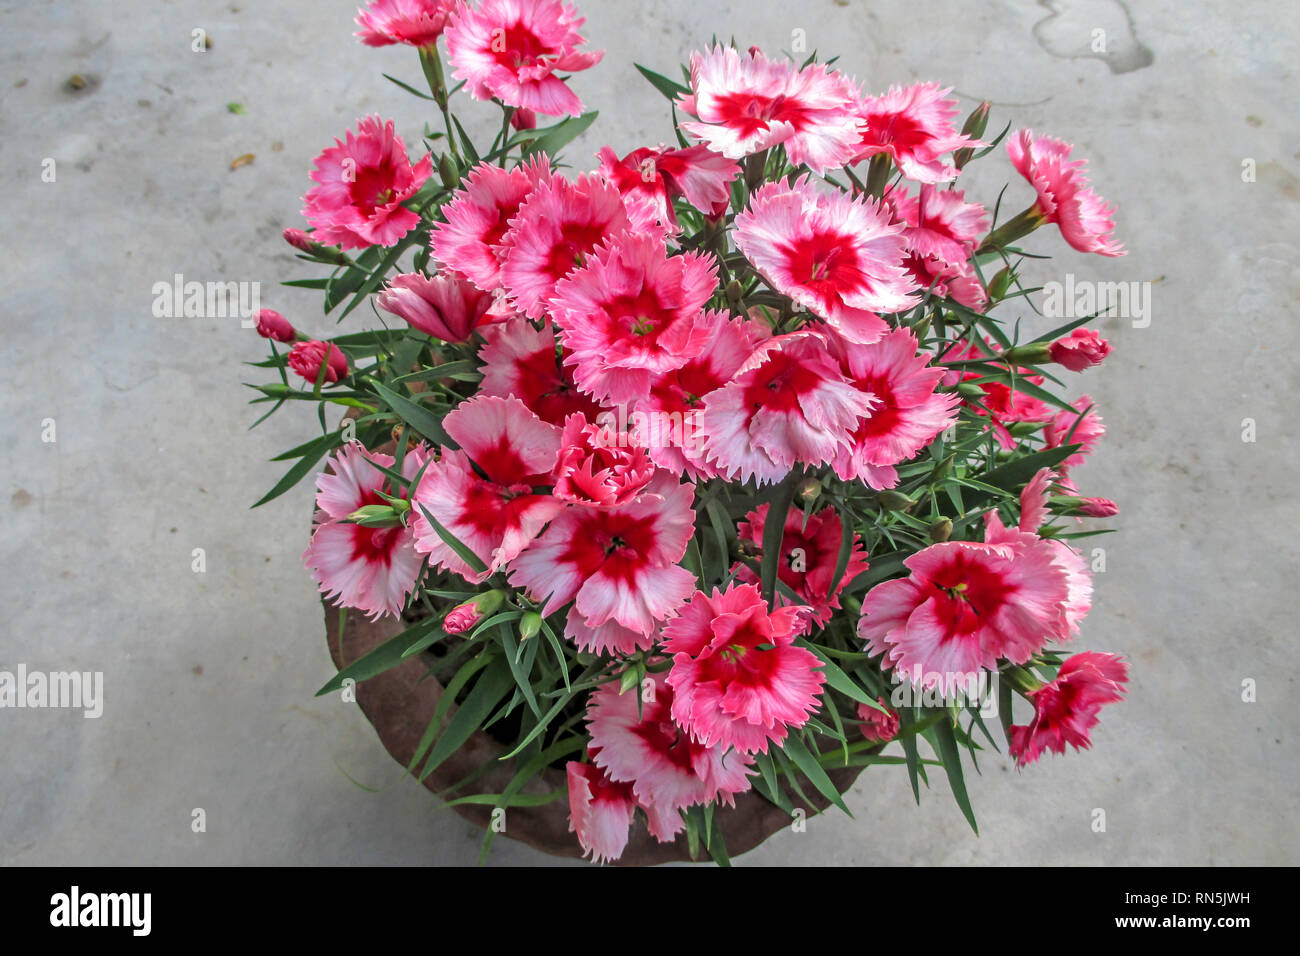 Beautiful Sweet William Dianthus Flowers In A Clay Pot. - Stock Image